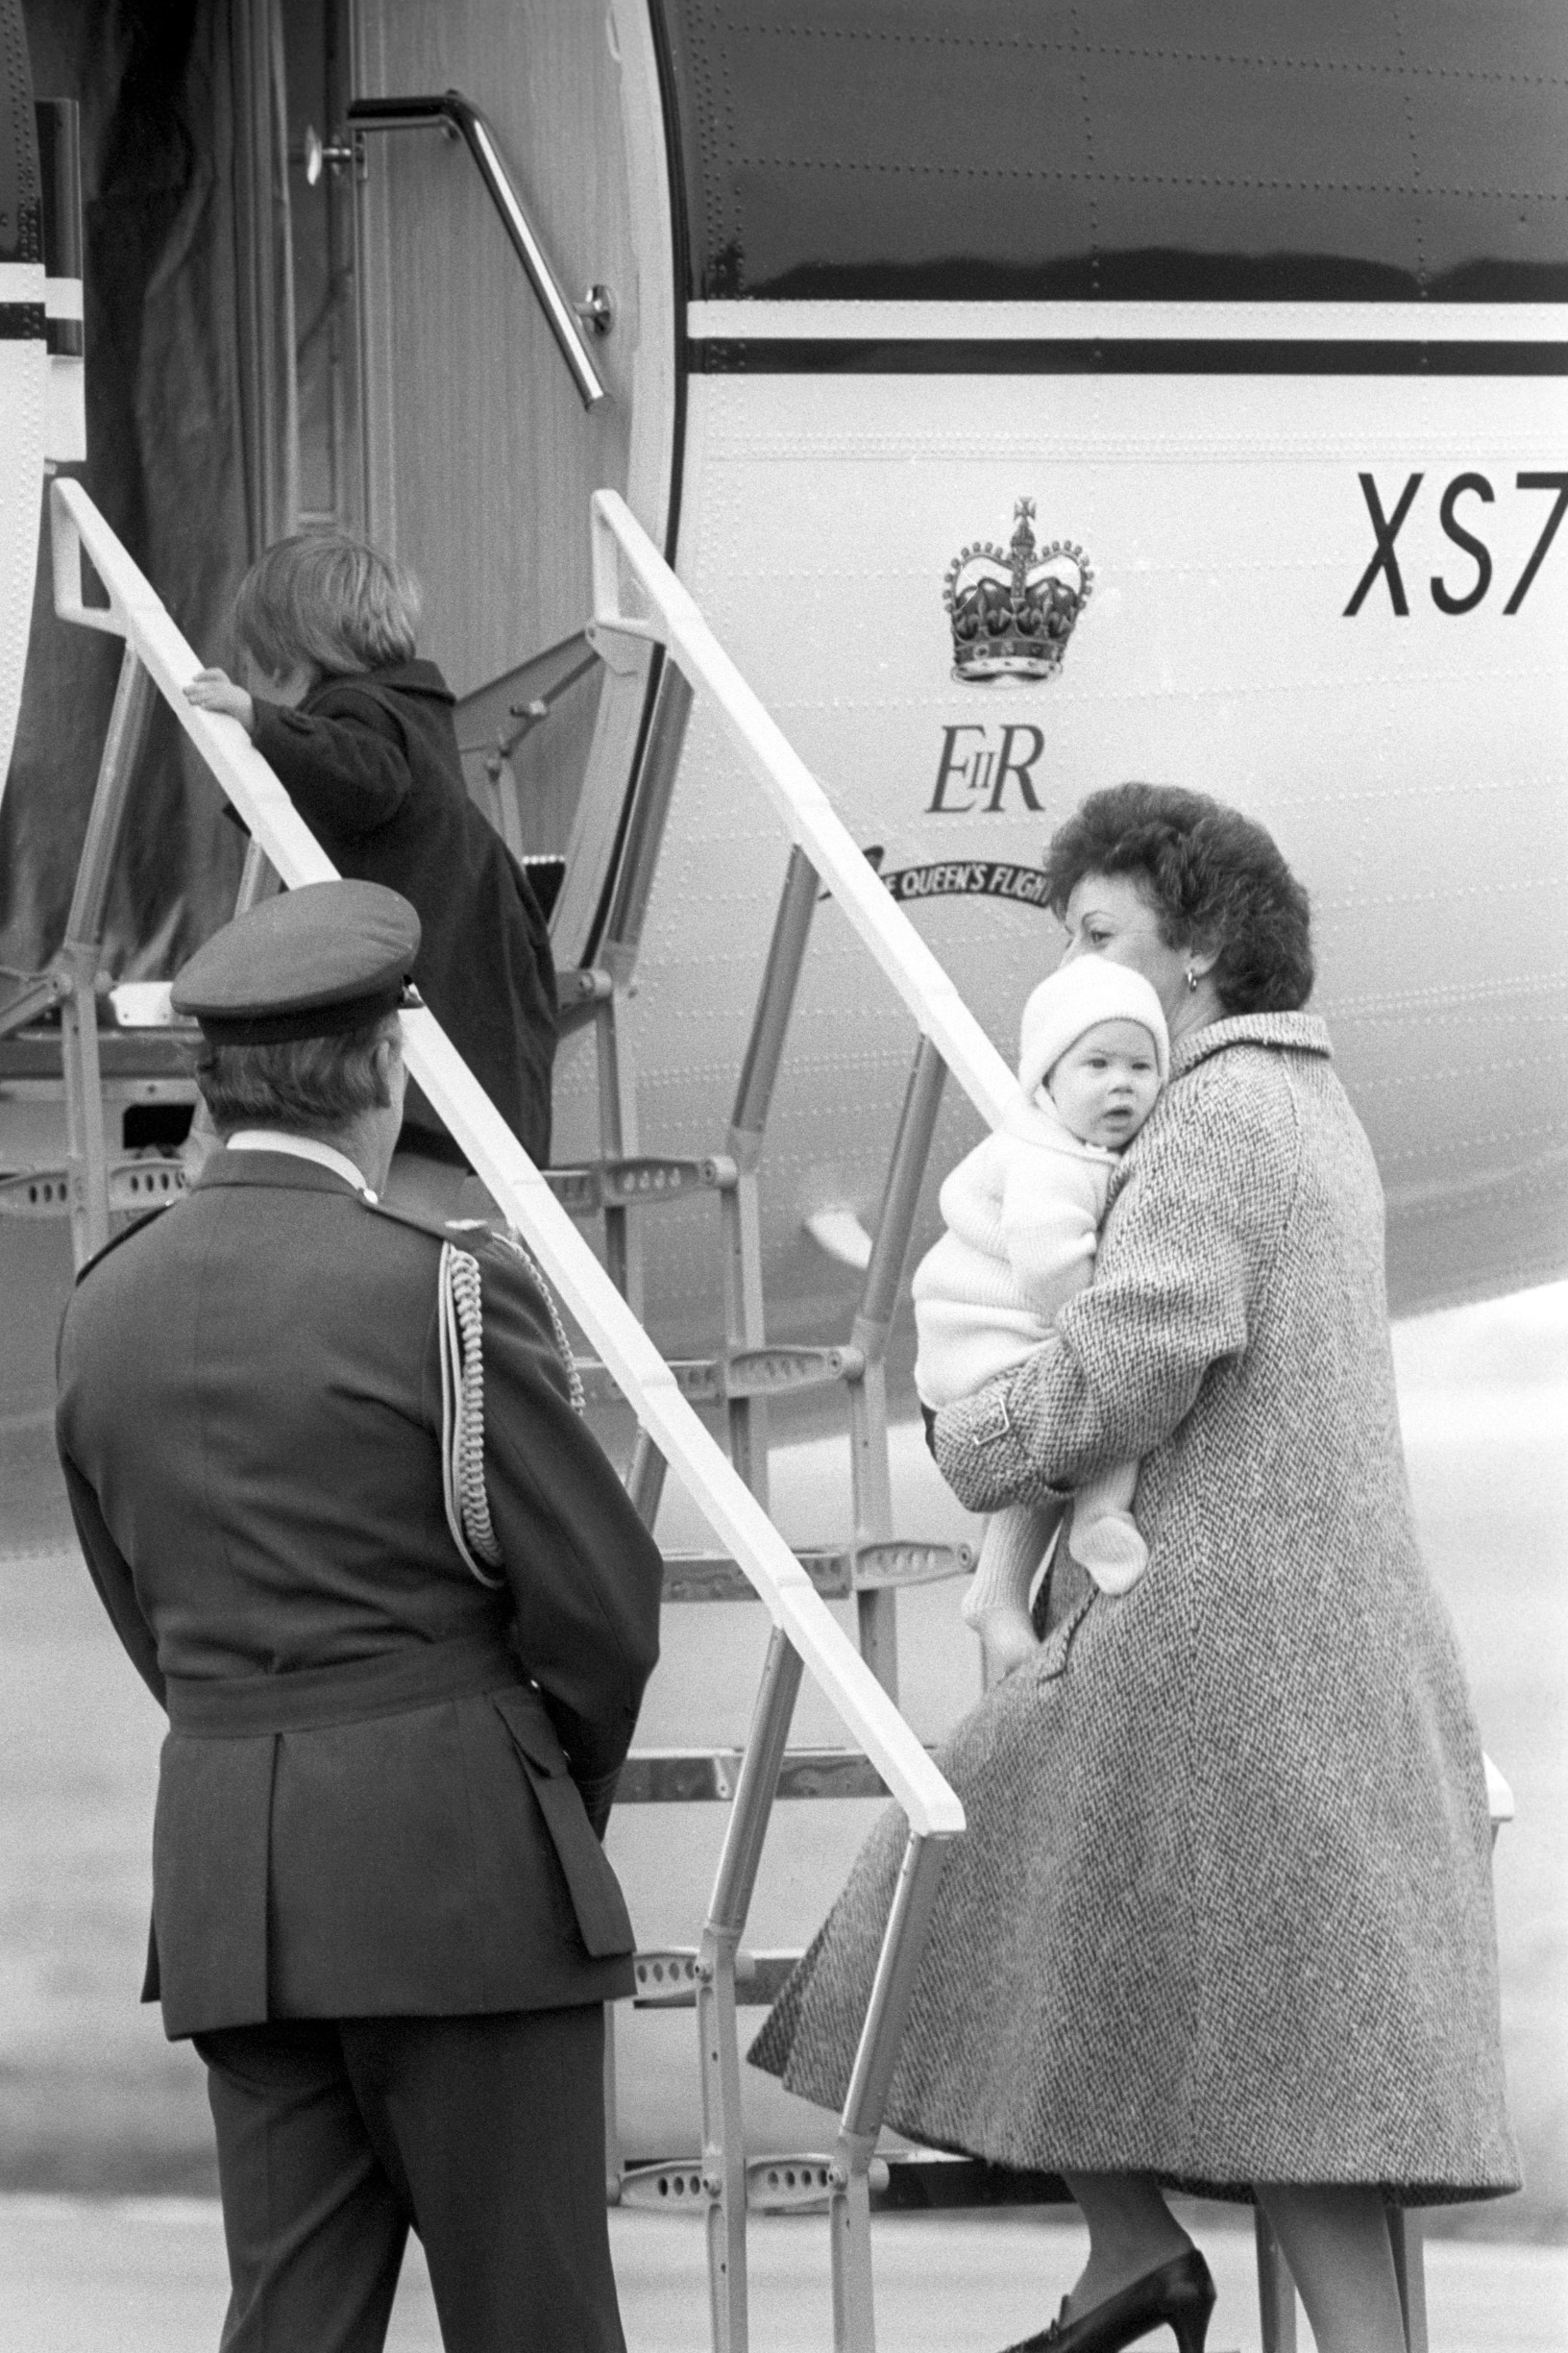 File photo dated 25/03/85 of Prince William, who will be three in June, walks aboard the aircraft while his six-month-old brother Prince Harry is carried aboard by nanny Barbara Barnes at Dyce Airport in Aberdeen. The children were flying back to London with their mother the Princess of Wales in an aircraft of the Queen's Flight. The Duke of Sussex was a cuddly child who was fearless and mischievous even at a young age.,Image: 416971120, License: Rights-managed, Restrictions: FILE PHOTO, Model Release: no, Credit line: PA / PA Images / Profimedia